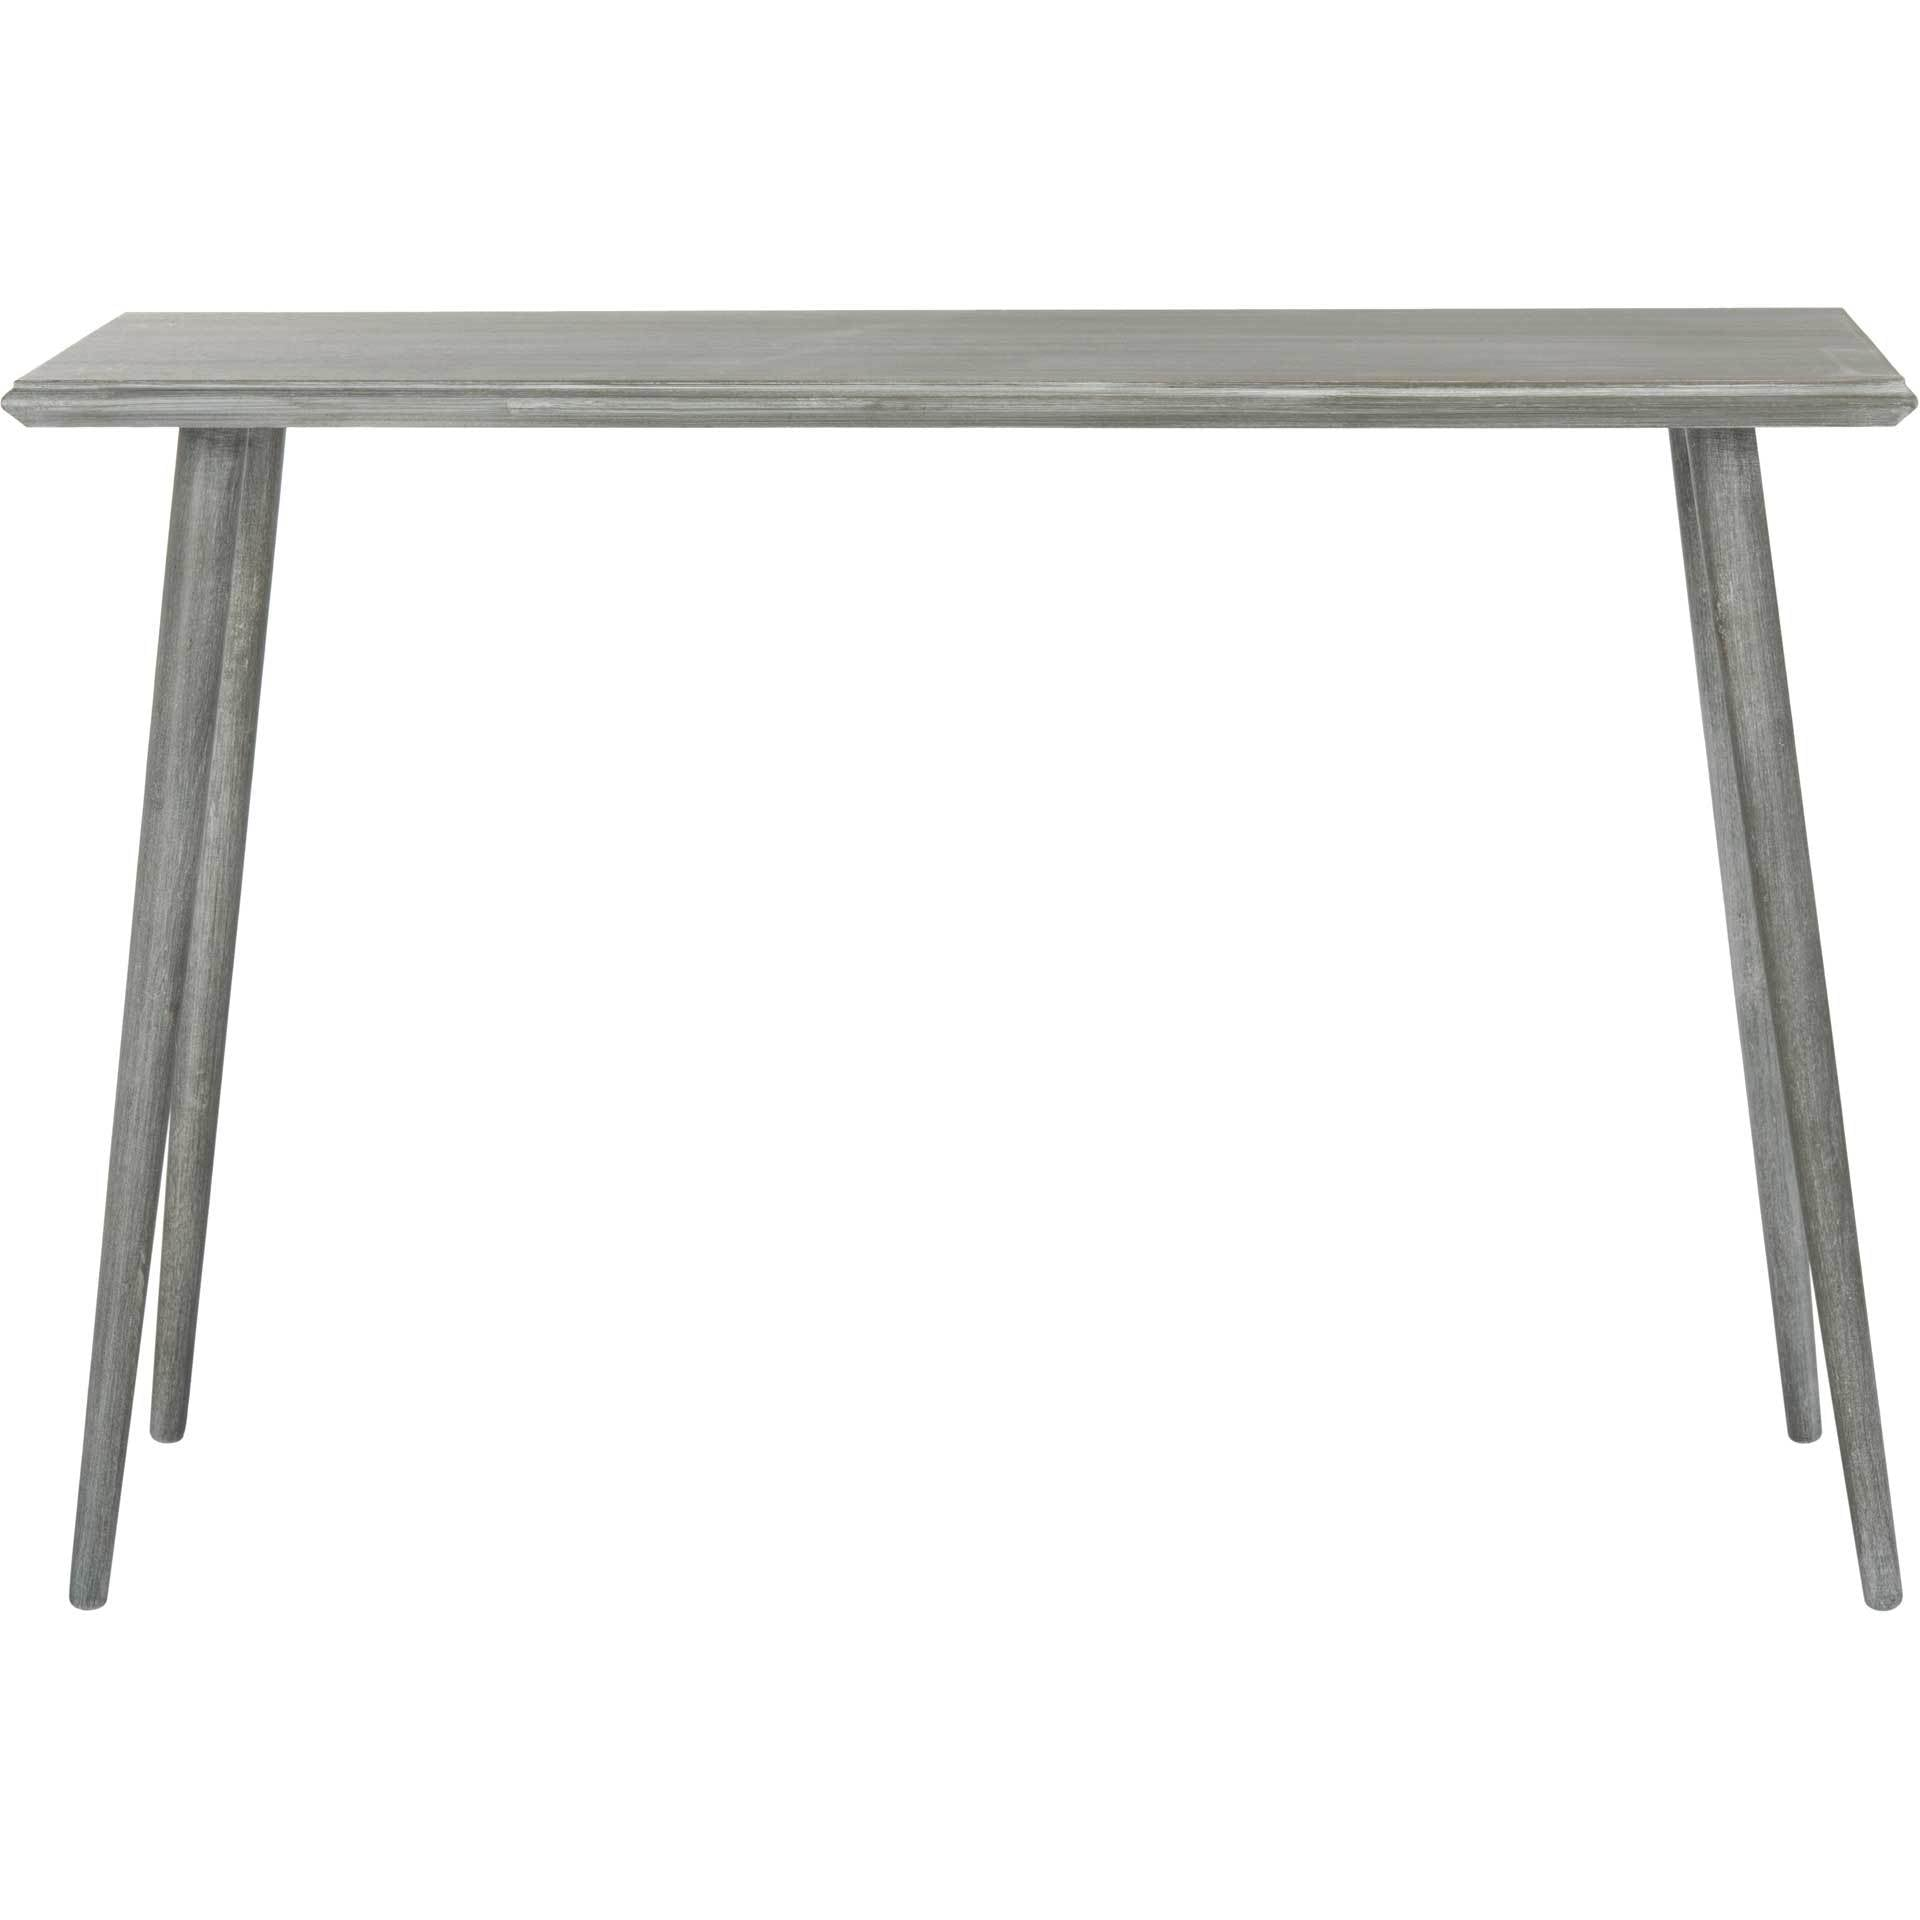 Mathew Console Table Slate Gray